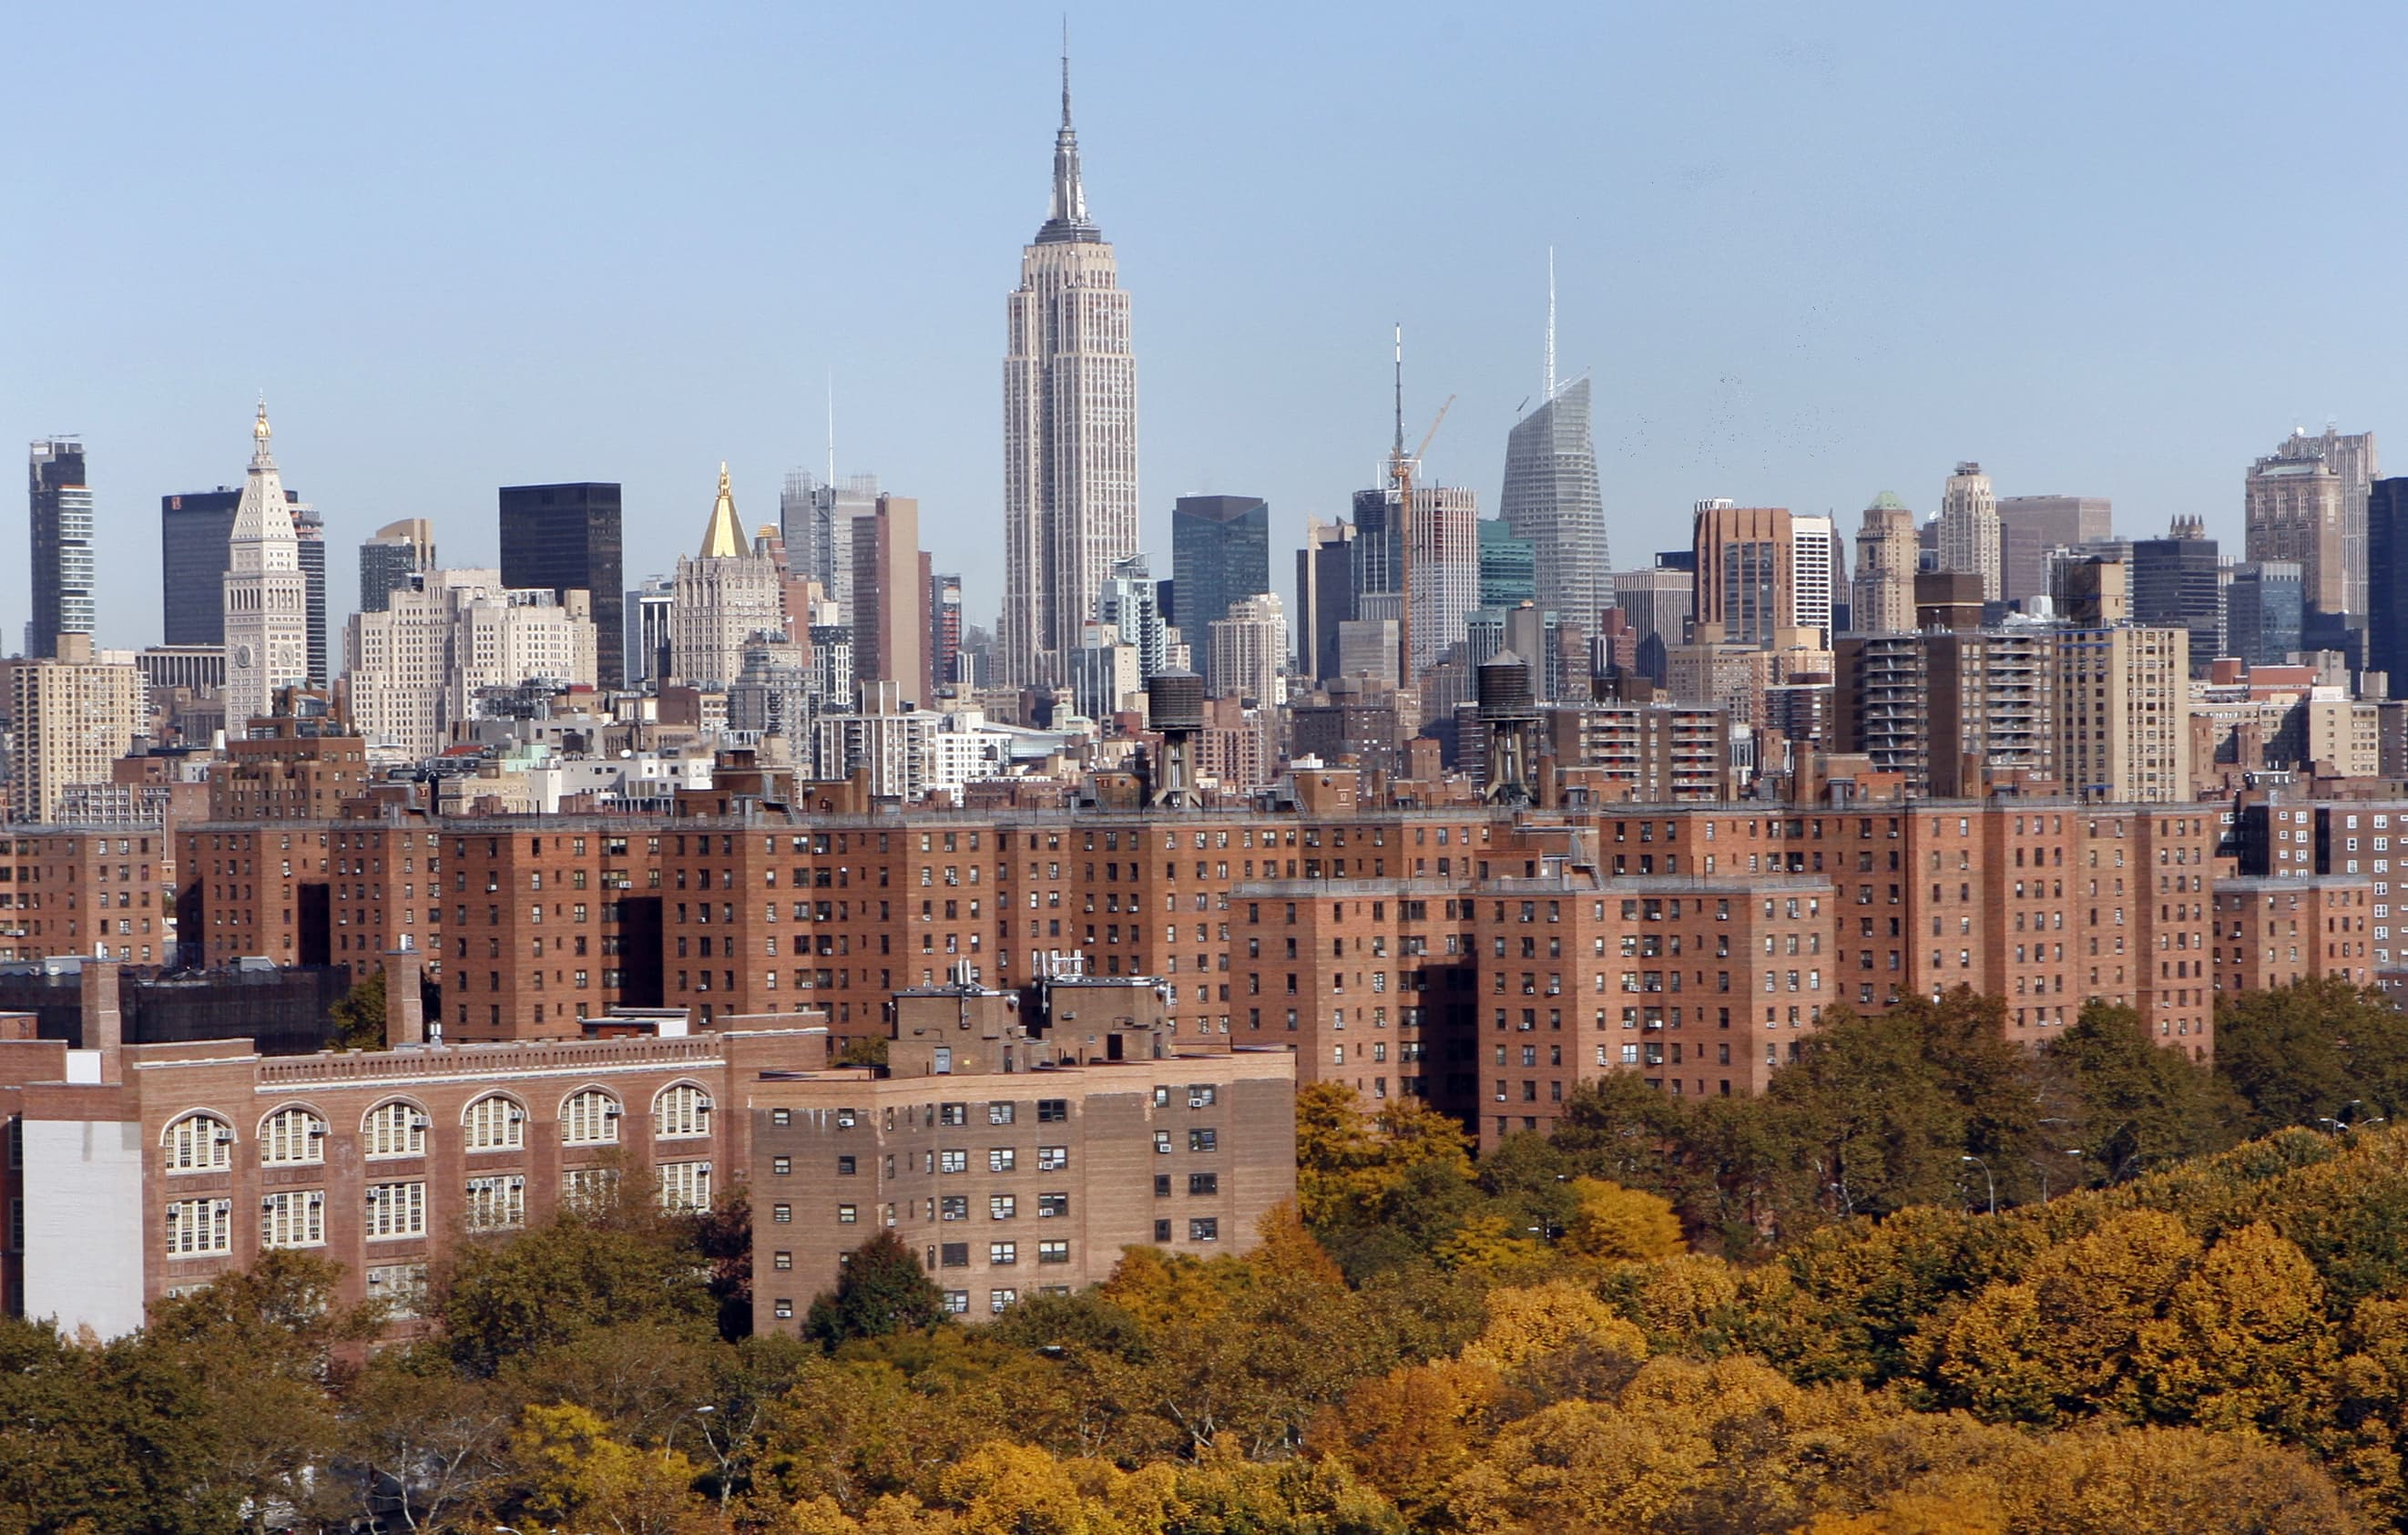 Manhattan apartment contracts fall over 80% in May, Florida surges